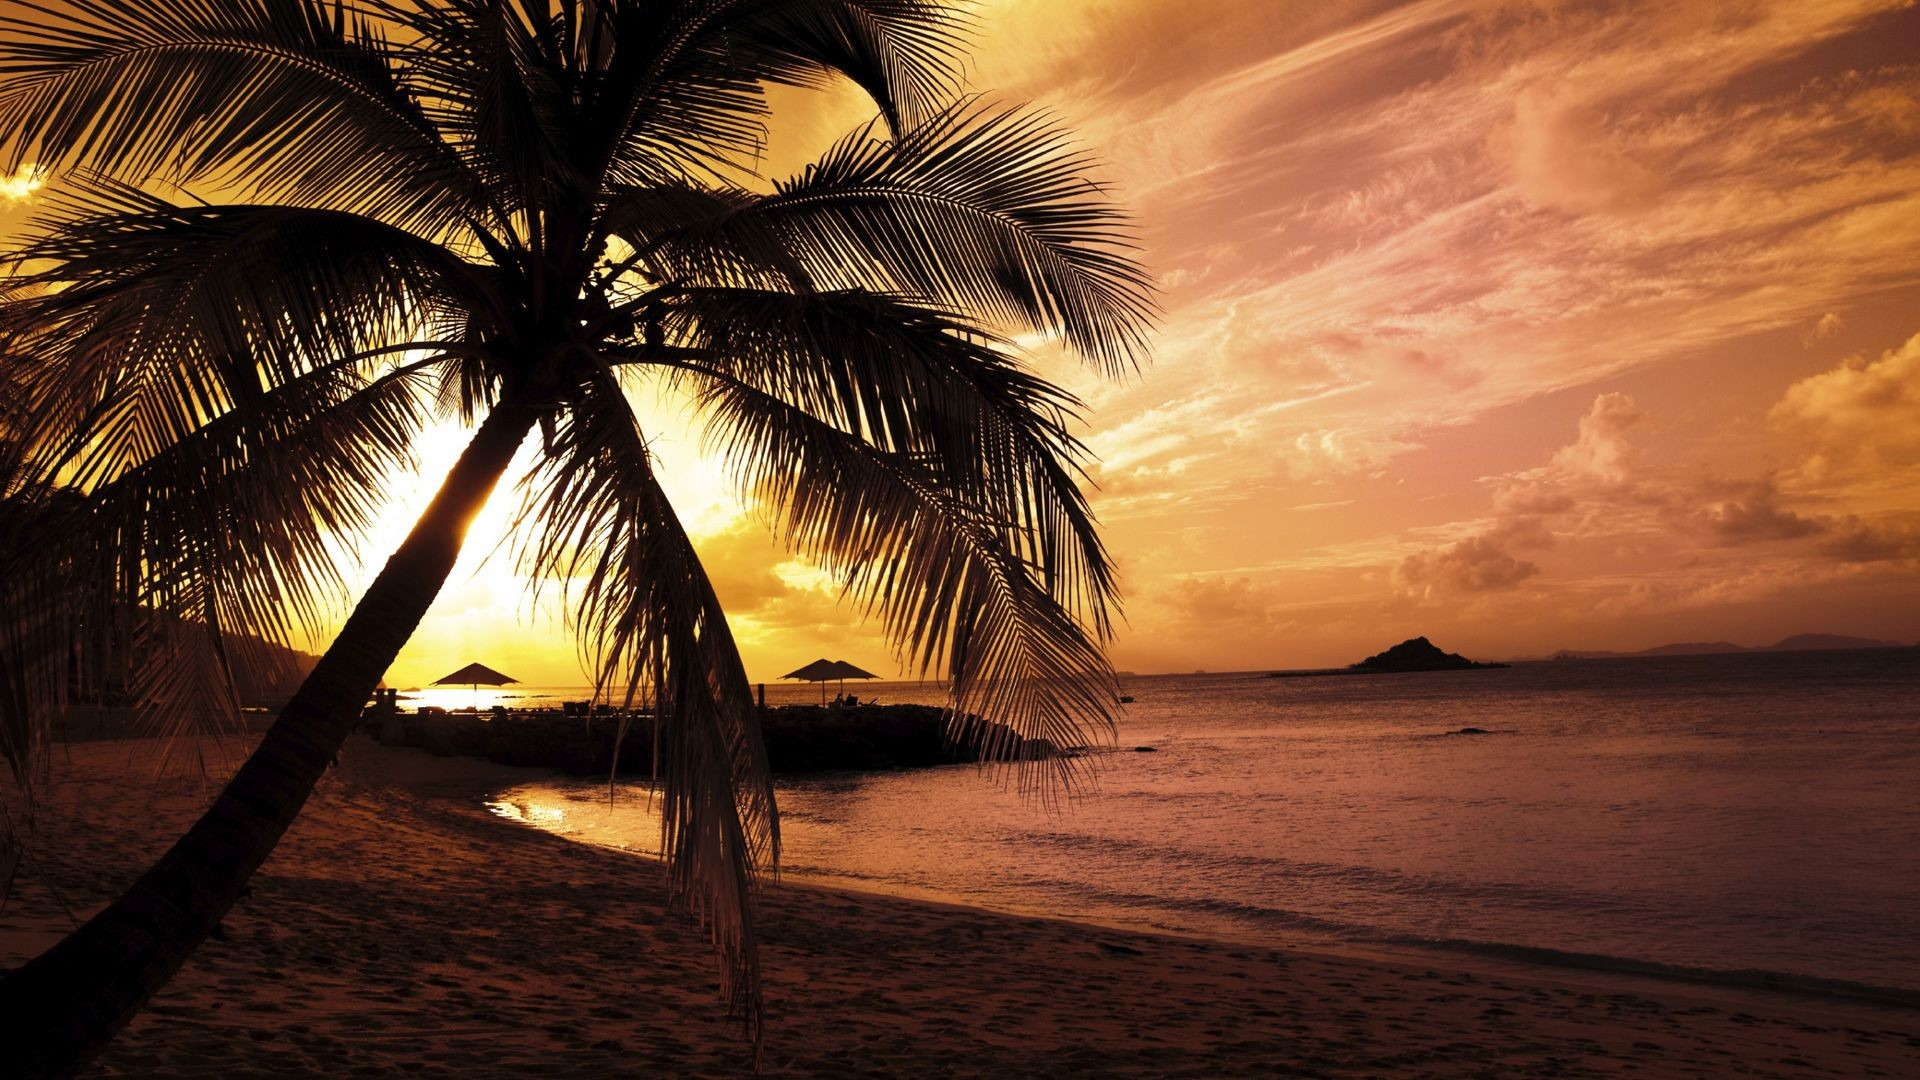 1920x1080 Tropical beach scenery at night Wallpapers